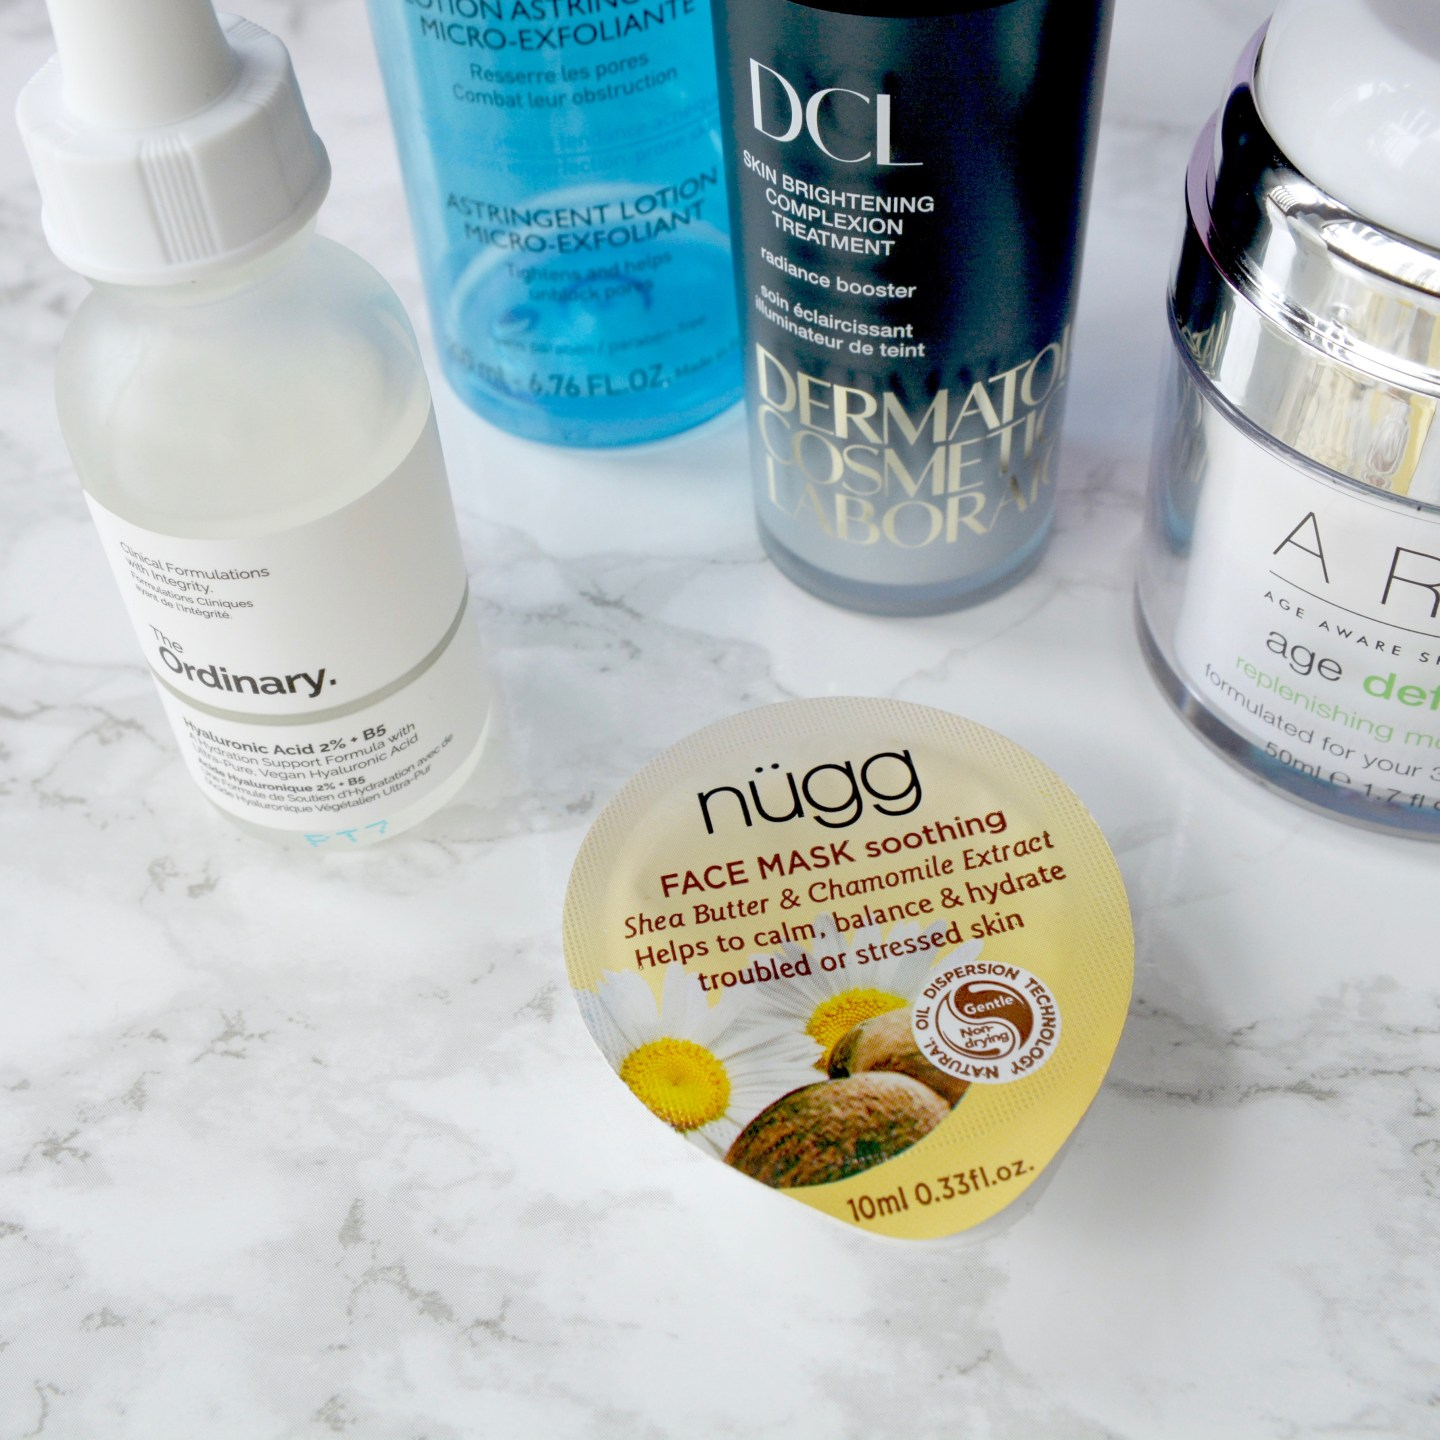 Skincare Shake Up: Nugg face masks, great for rosacea/sensitive skin